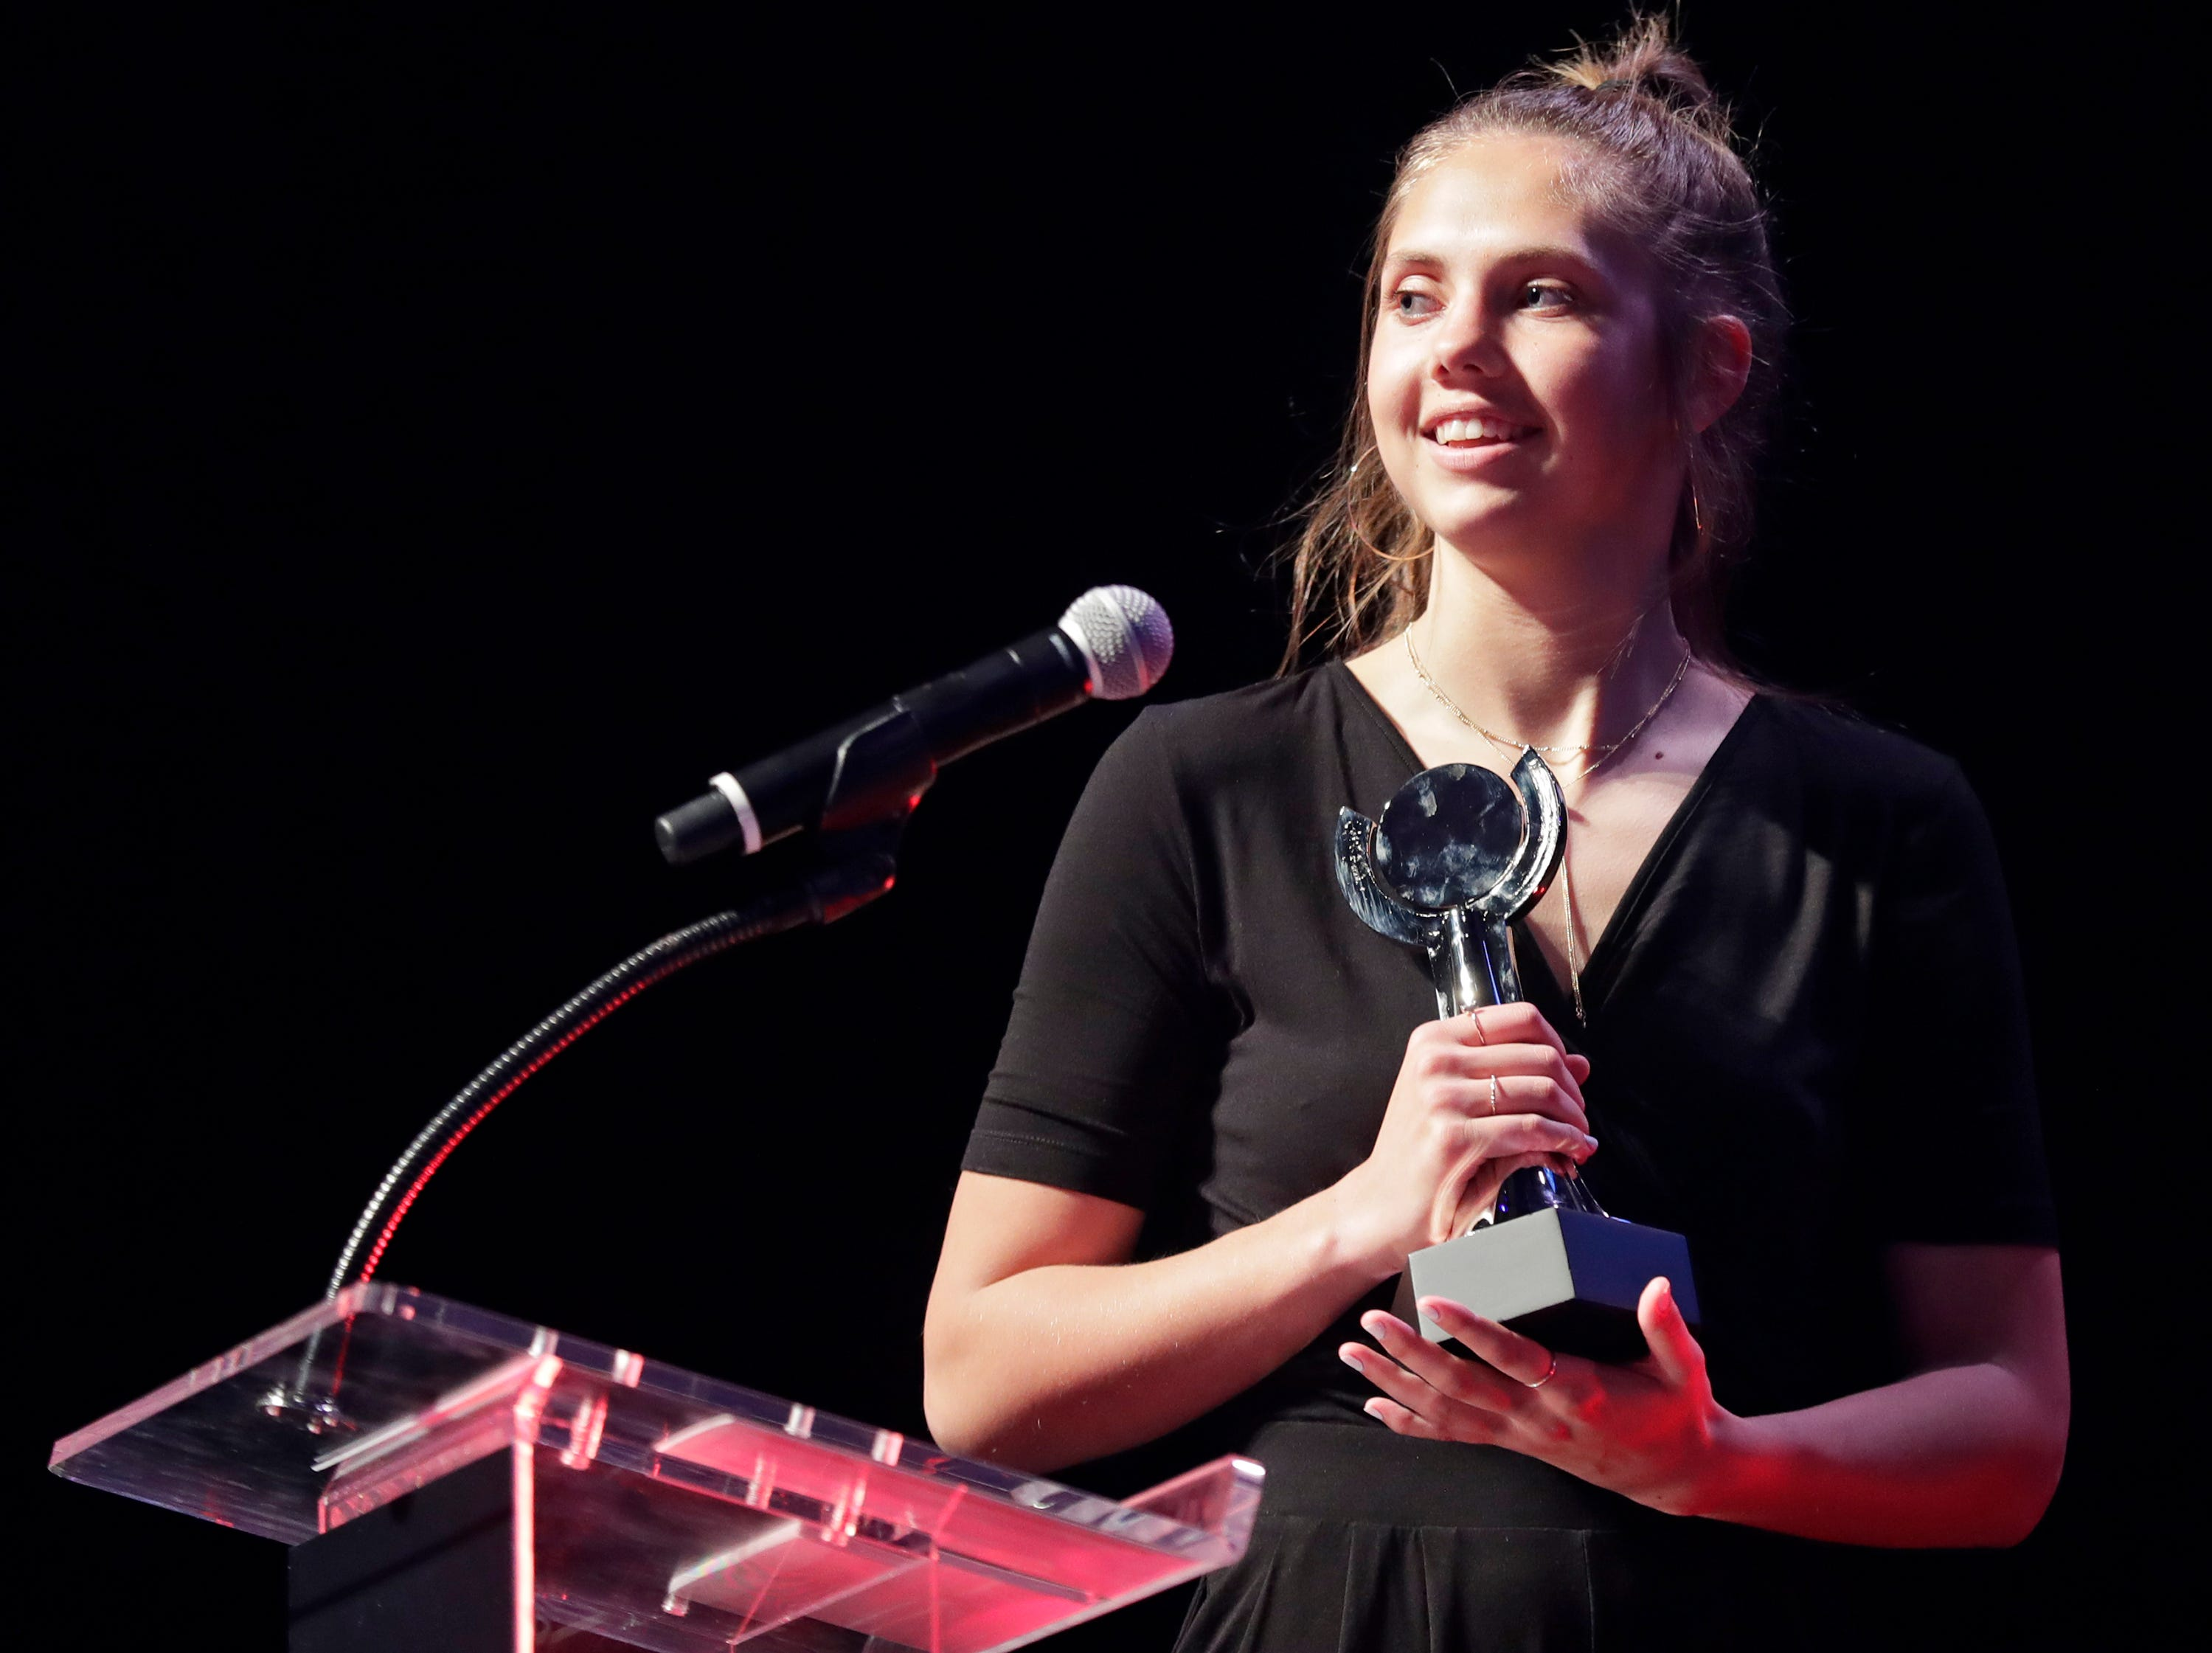 Girls Soccer Player of the Year, Bay Port's Emma Nagel during the Wisconsin High School Sports Awards show at the Fox Cities Performing Arts Center on Wednesday, May 8, 2019, in Appleton, Wis. Olympic champion Michael Phelps was the guest speaker. The annual event was presented by USA TODAY NETWORK-Wisconsin.  Wm. Glasheen/USA TODAY NETWORK-Wisconsin.